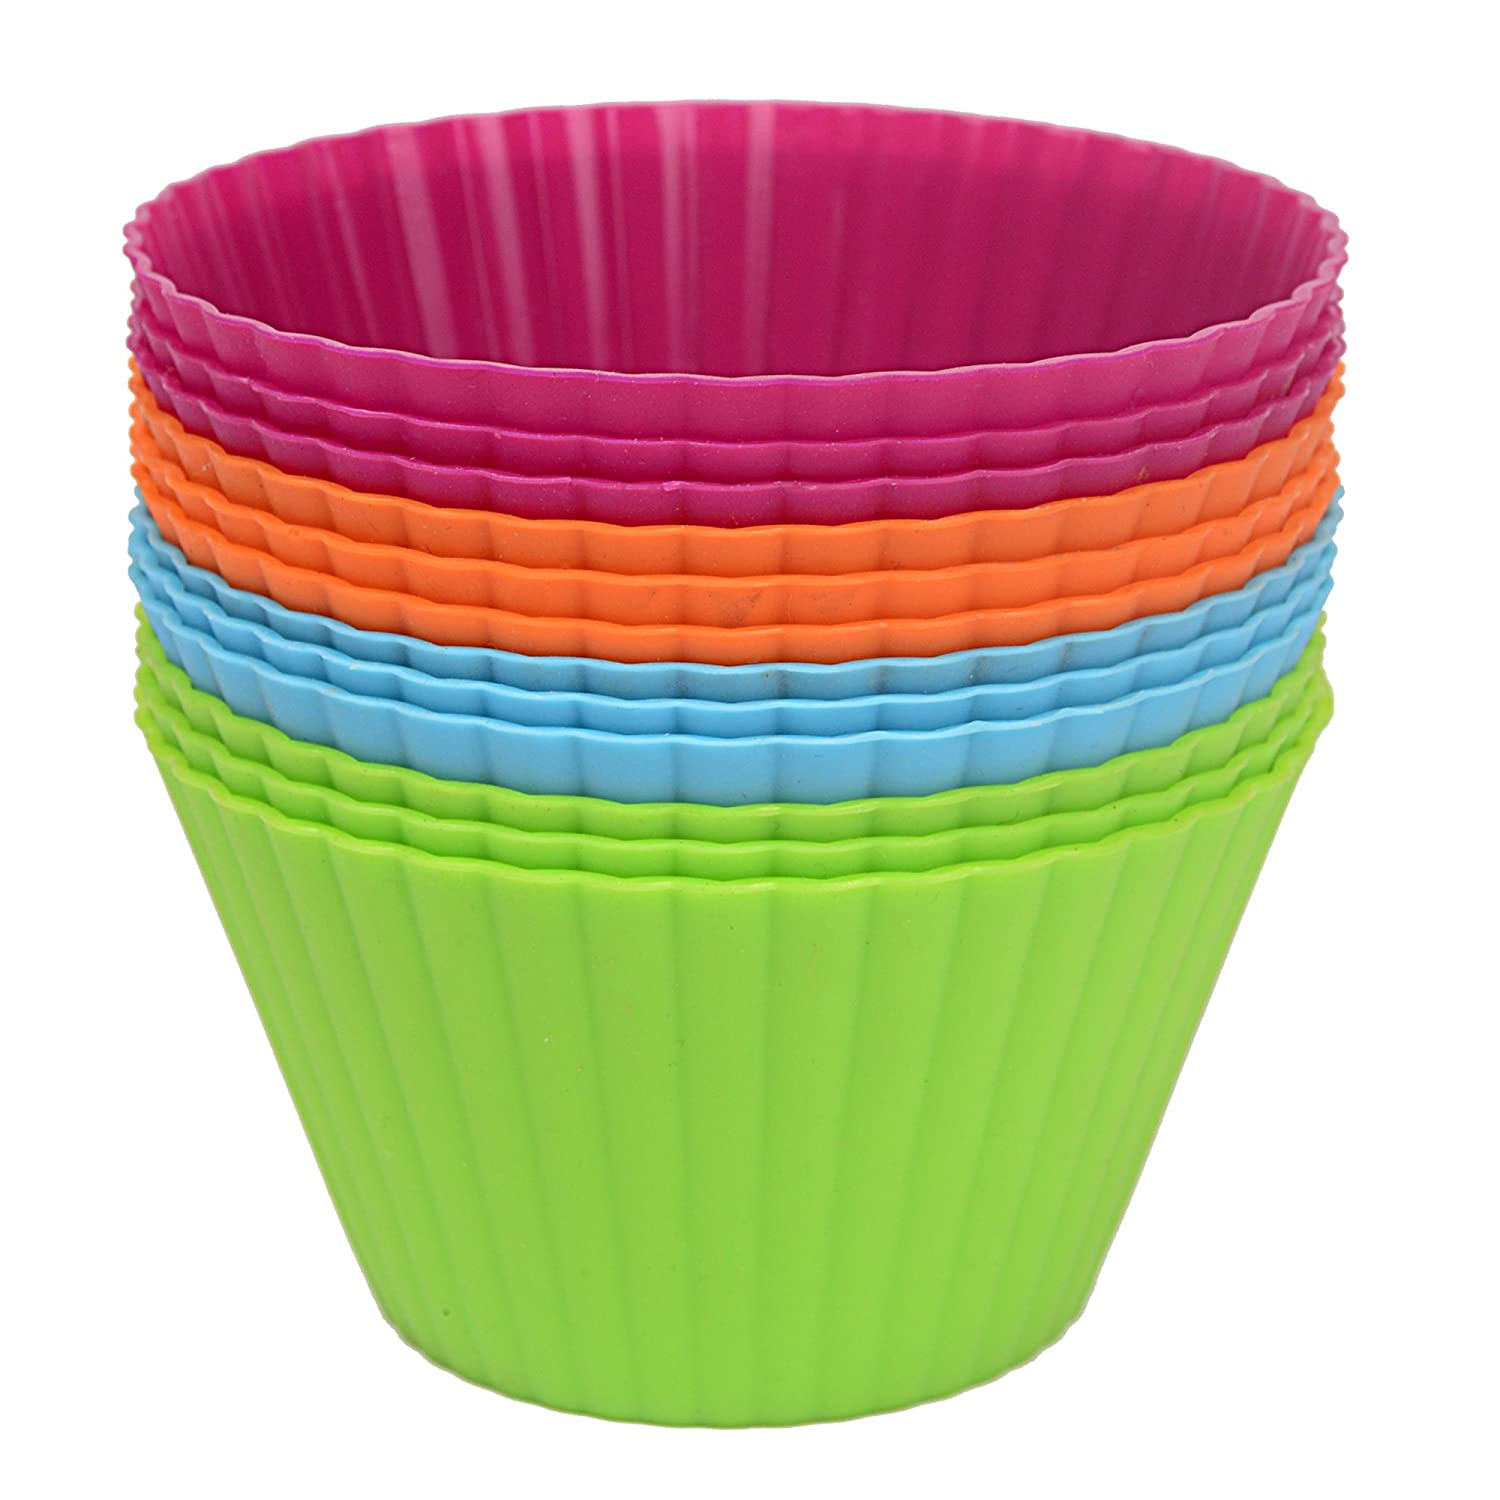 Webake 3.5'' Large Silicone Baking Cups, Cupcake Liners, Muffin Cups, 12-Pack